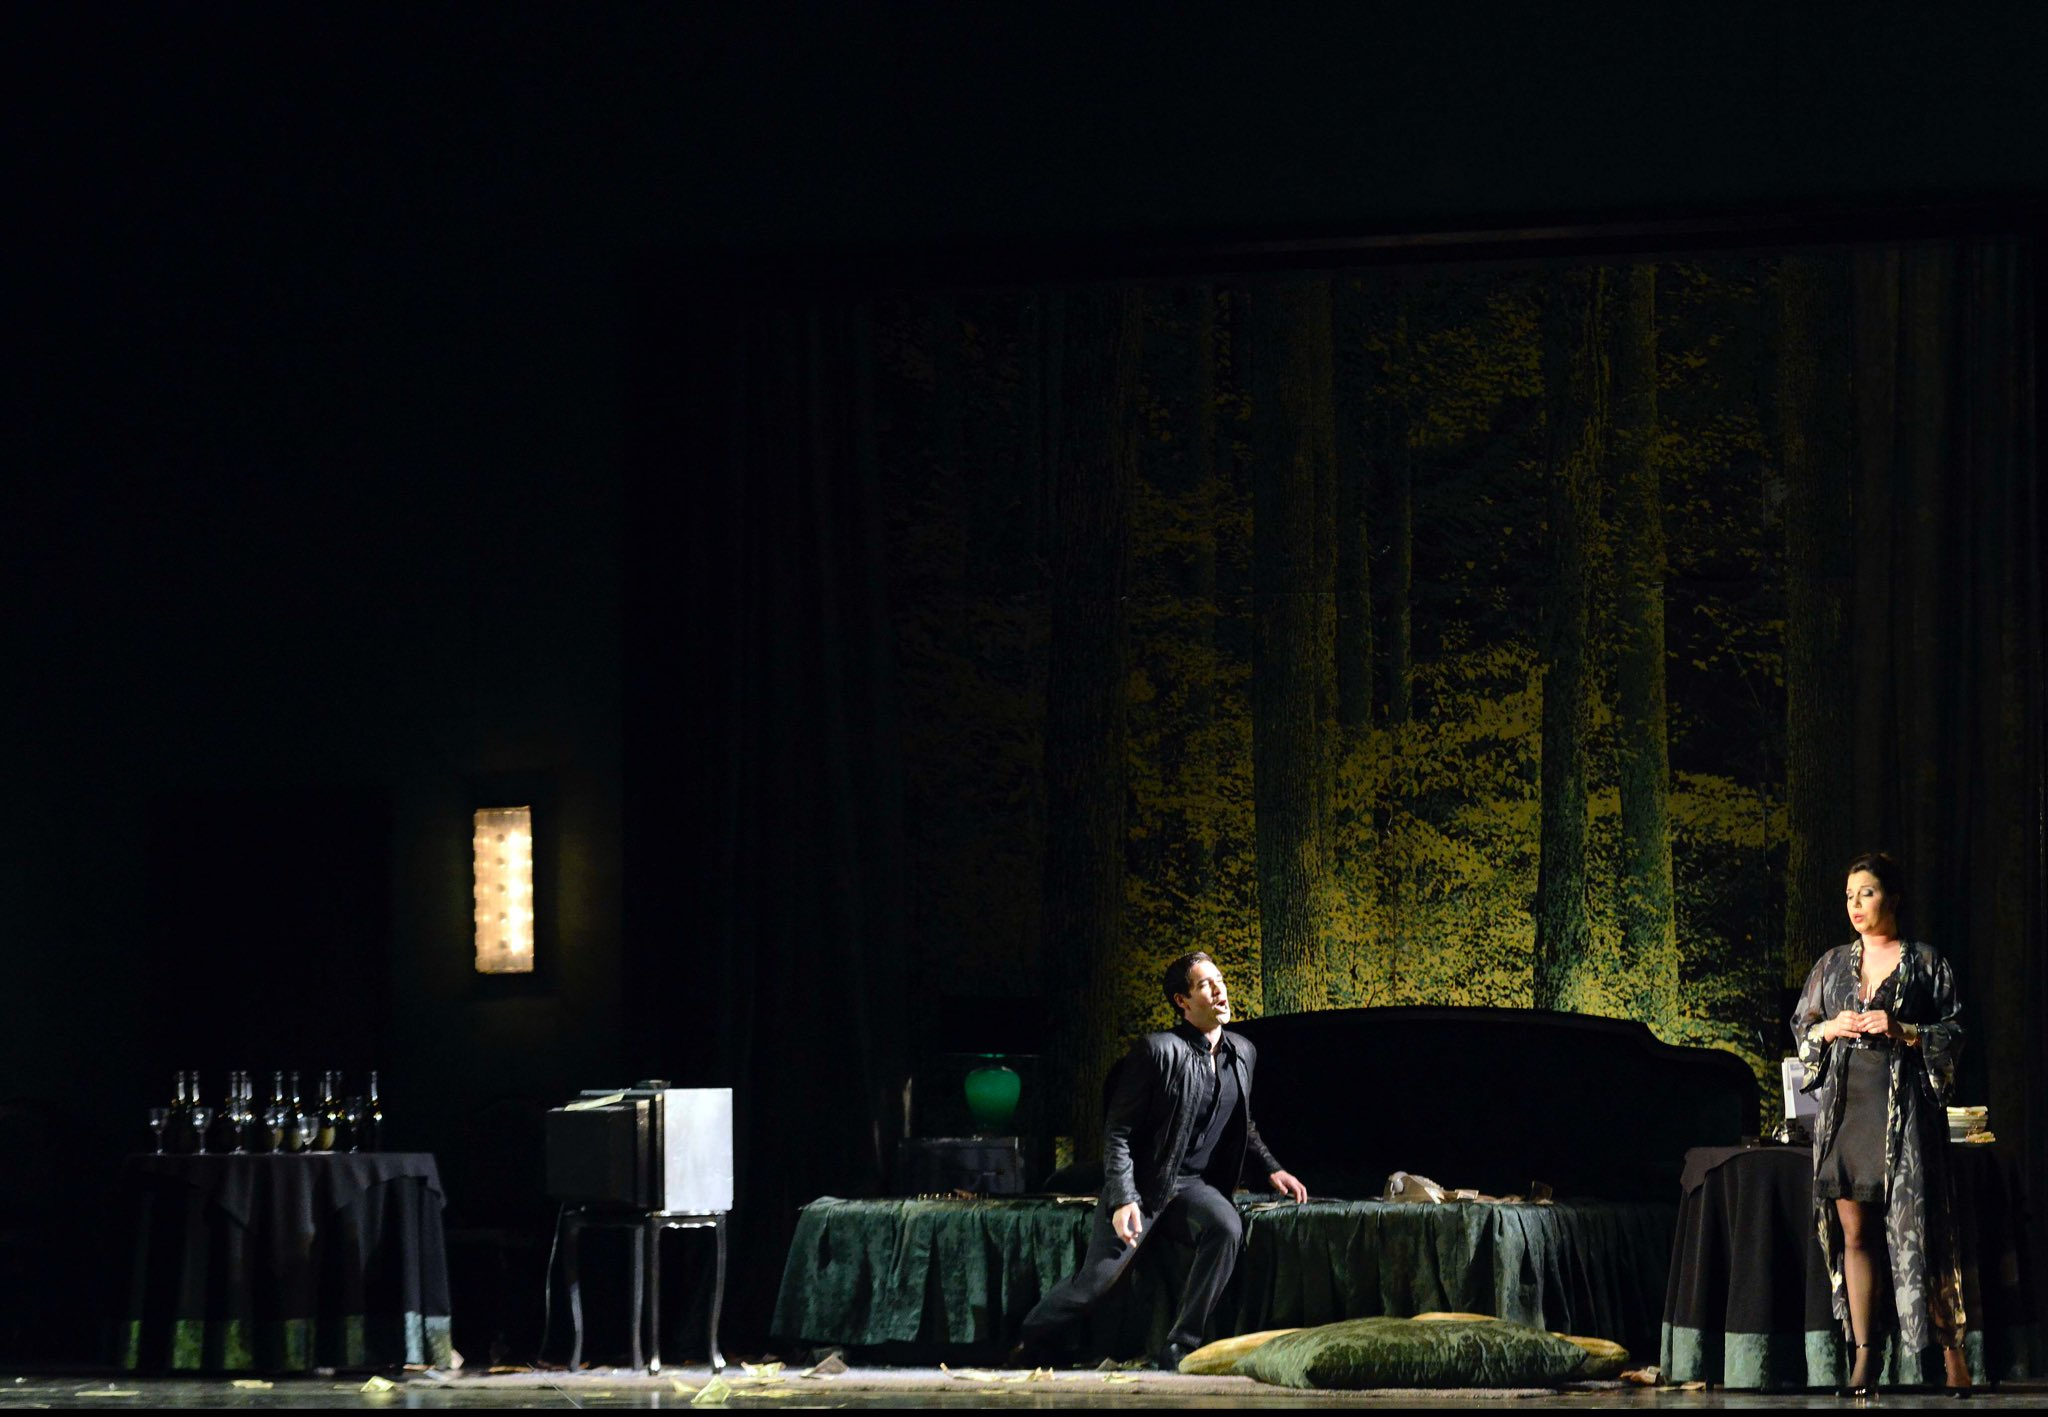 🎭 Good morning, everyone and welcome to La Fenice Opera House! Double perforformance awaits you, guys, today. On the afternoon at 3.30 #LaTraviata and on this night at 8 a Commedia dell'arte play 'I Duellanti' at Sale Apollinee 🙌🏻 https://t.co/WmUwagqhi4